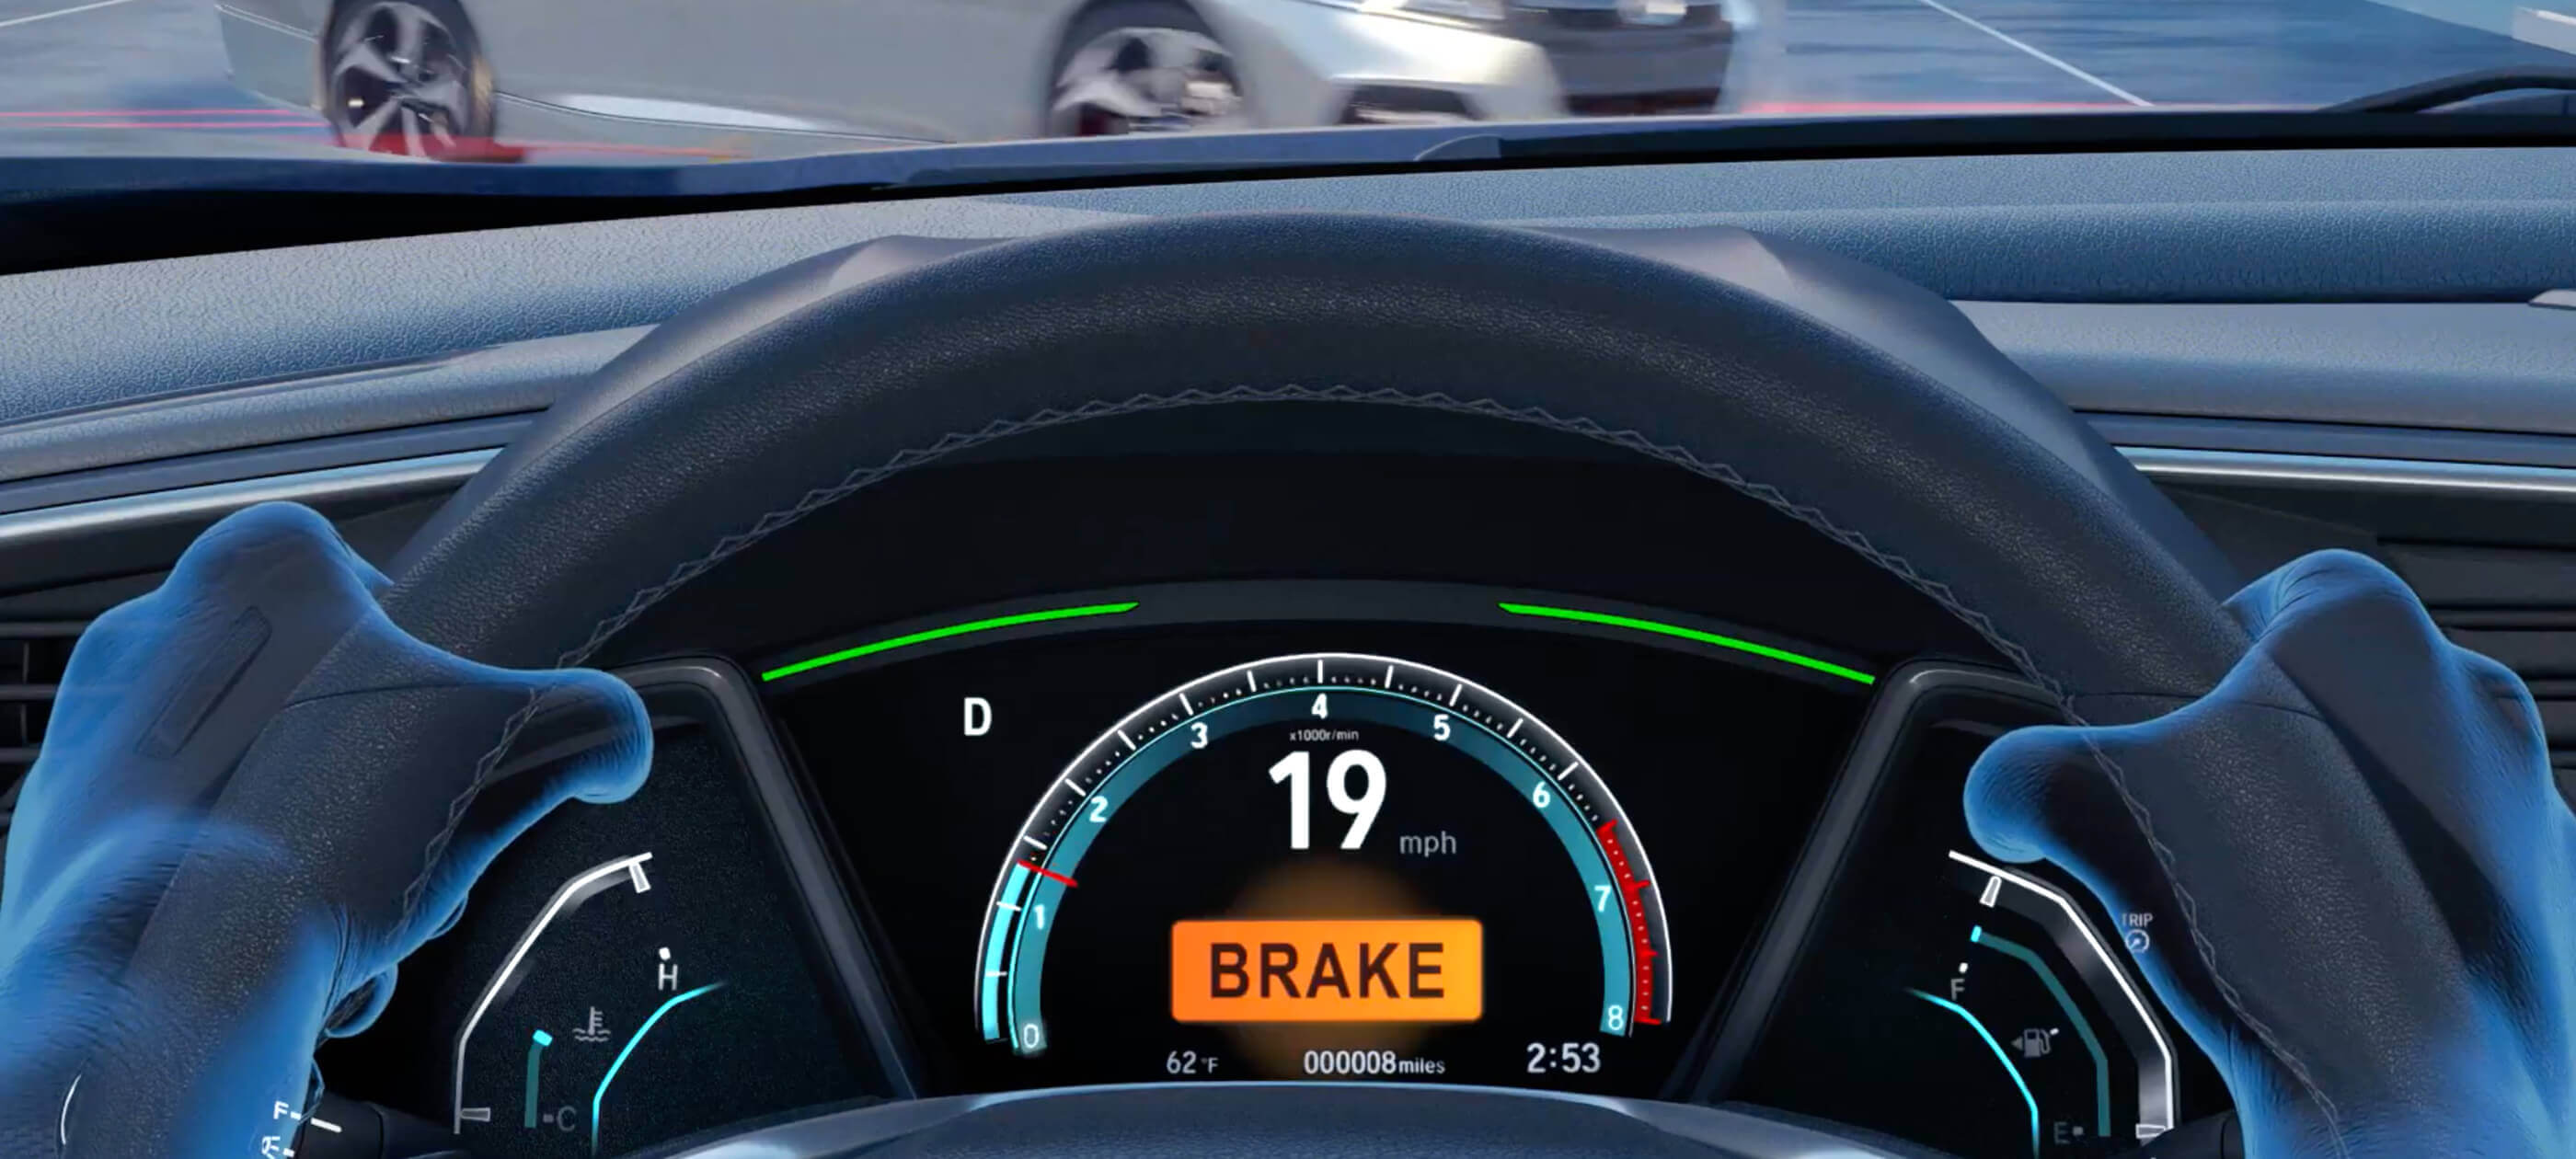 Collision Mitigation Braking System